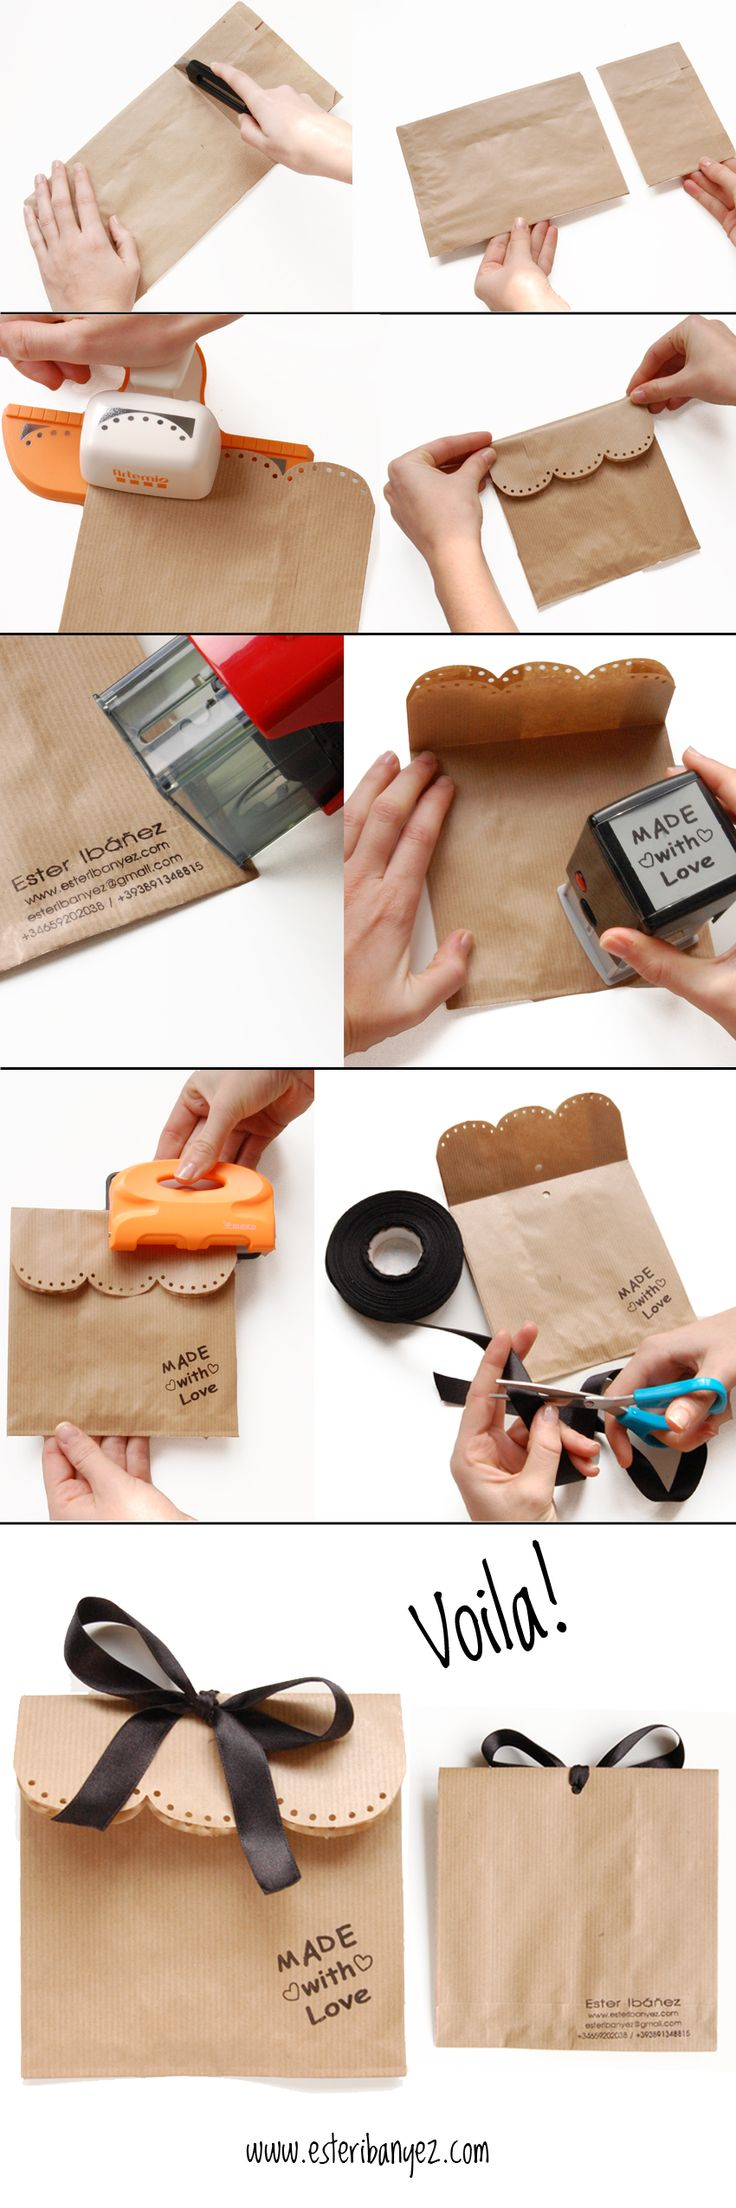 DIY Packaging : Made with Love